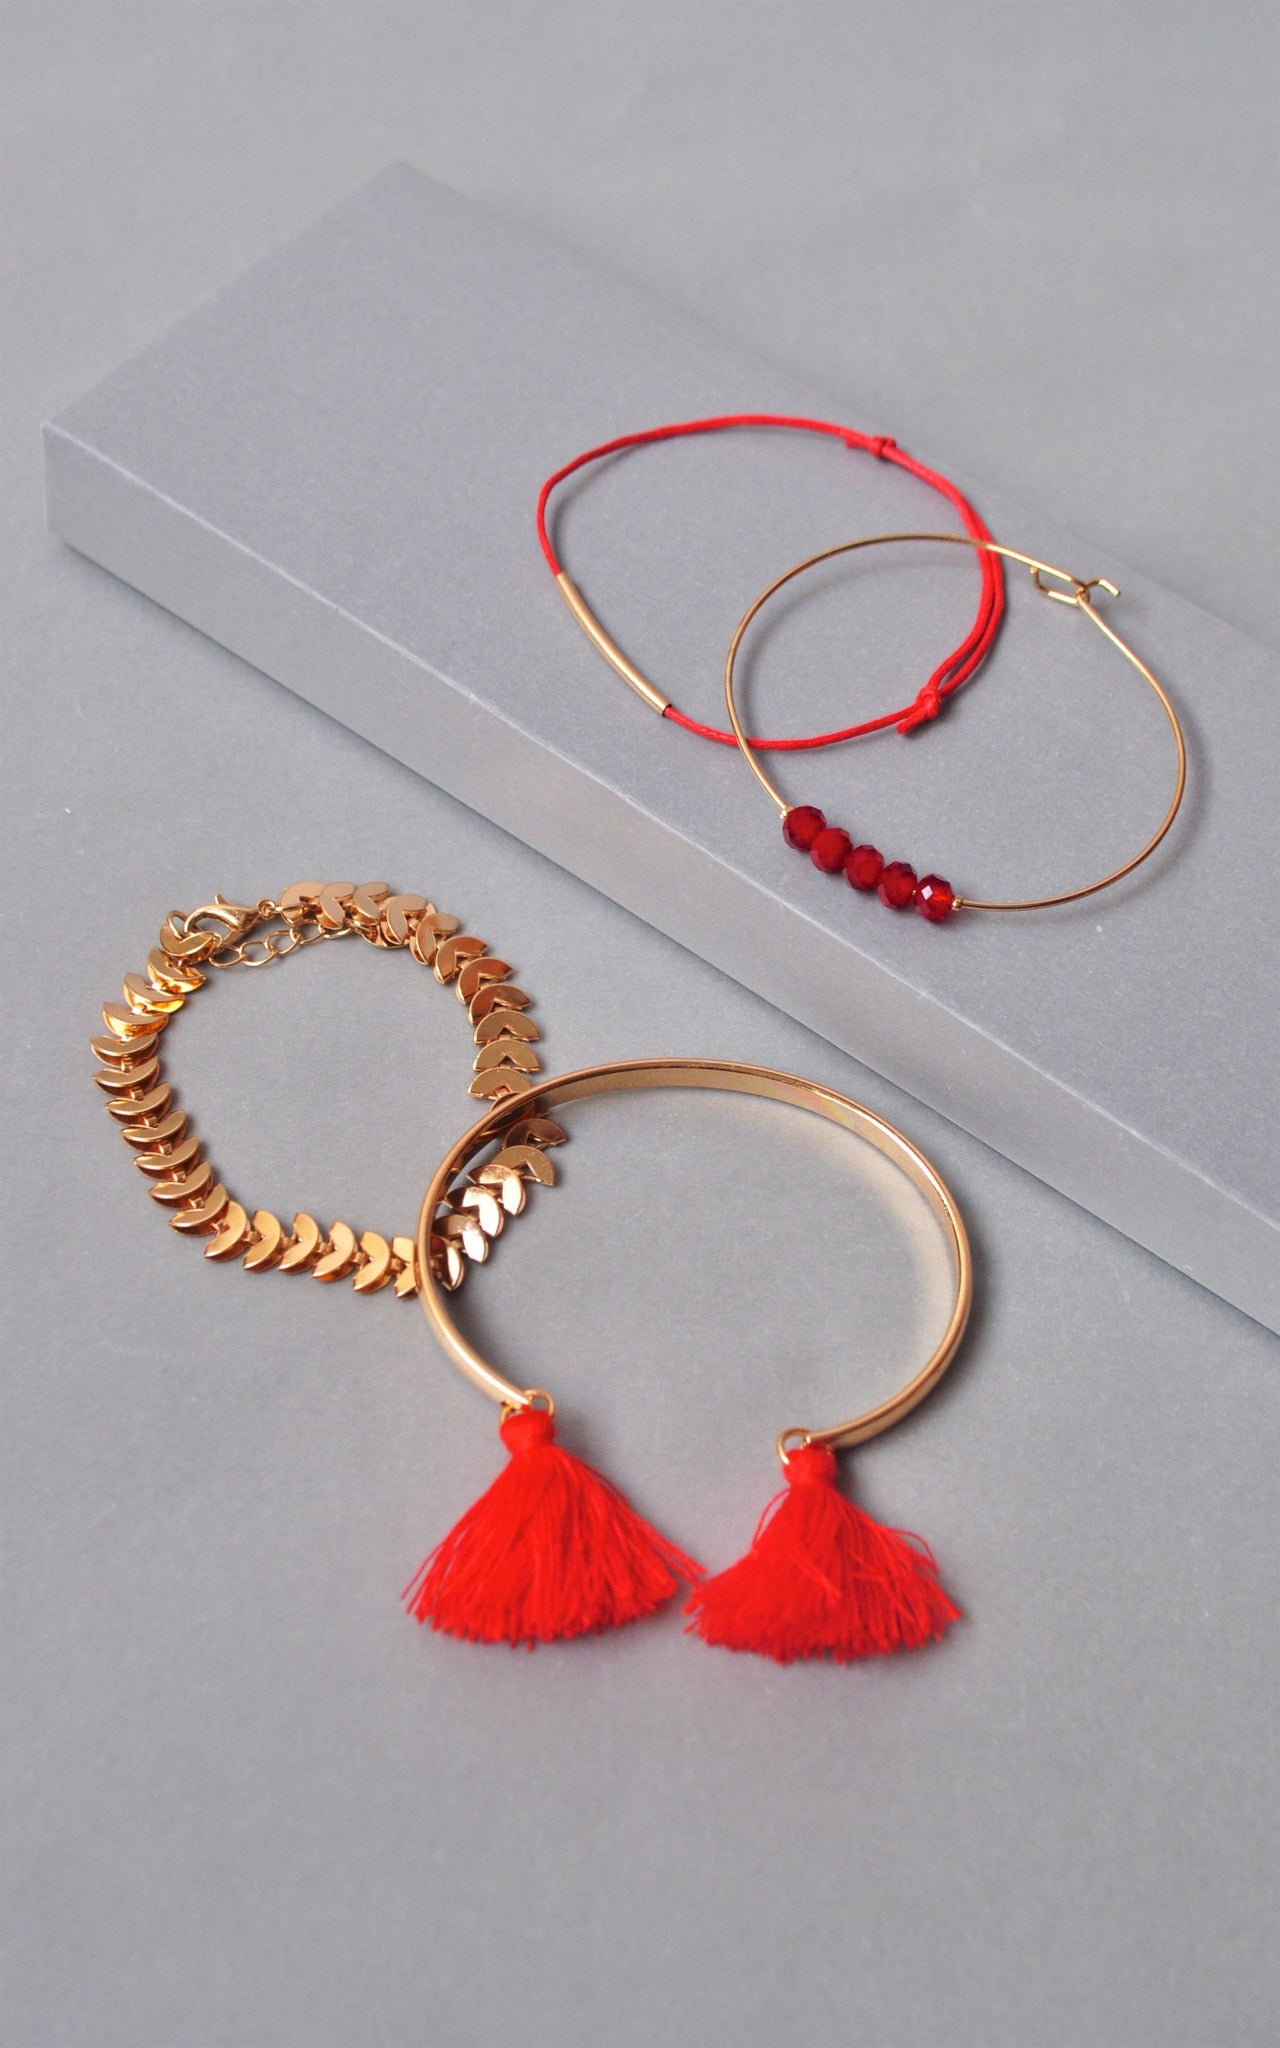 gold olizz bracelet red rose